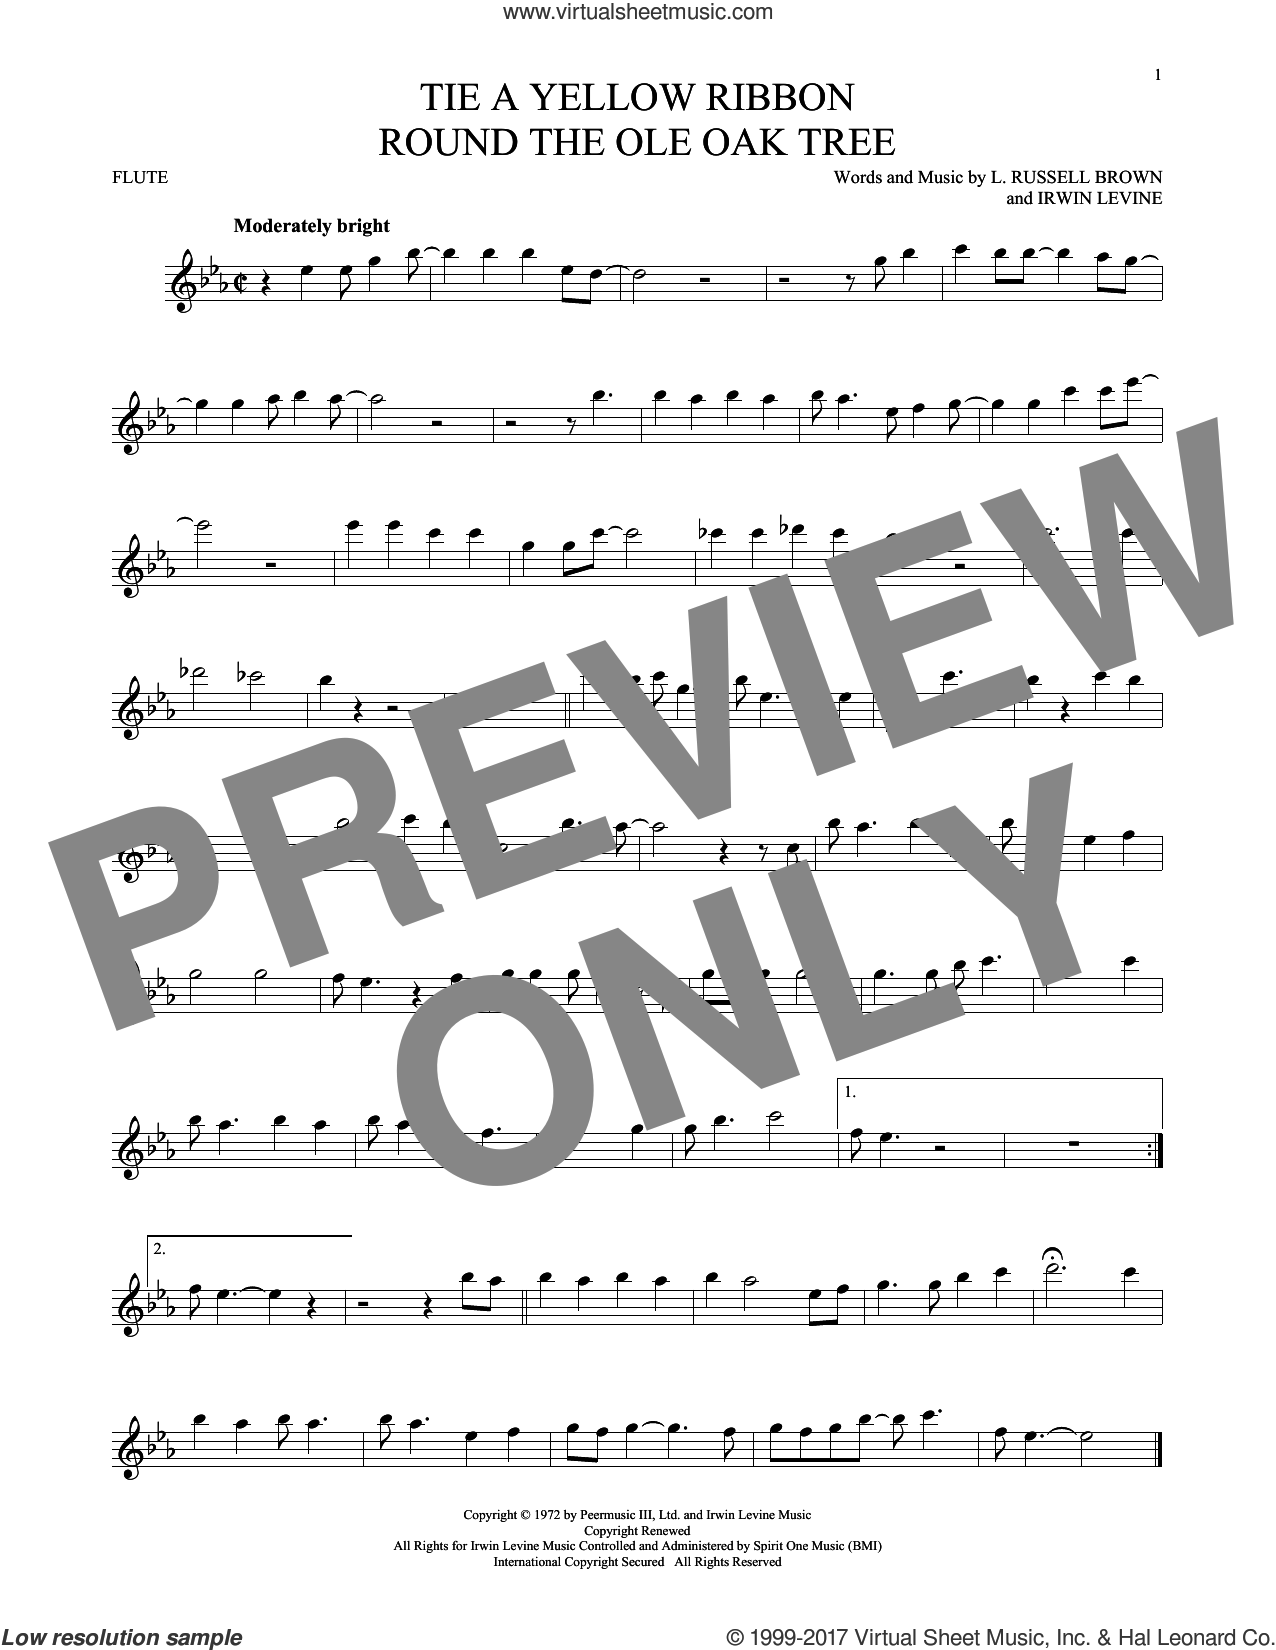 Tie A Yellow Ribbon Round The Ole Oak Tree sheet music for flute solo by Dawn featuring Tony Orlando, Irwin Levine and L. Russell Brown, intermediate skill level